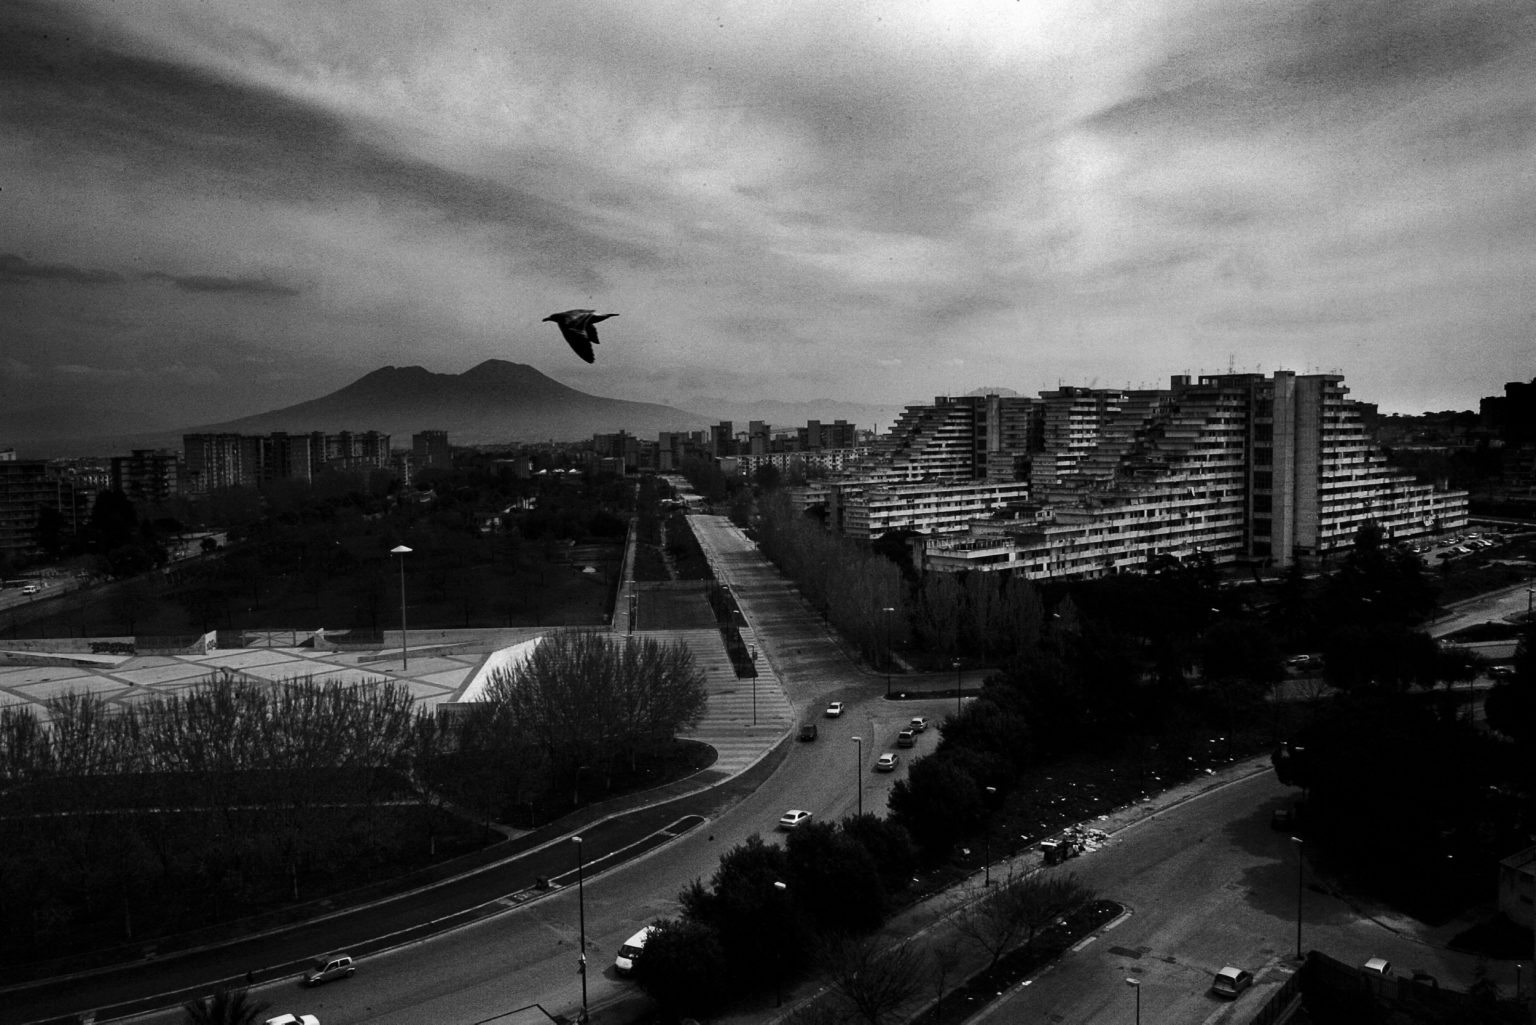 """View of the district and the housing blocks known as """"Vele"""", or Sails because of their shape. Scampia neighborhood. Naples, Italy, 2008"""